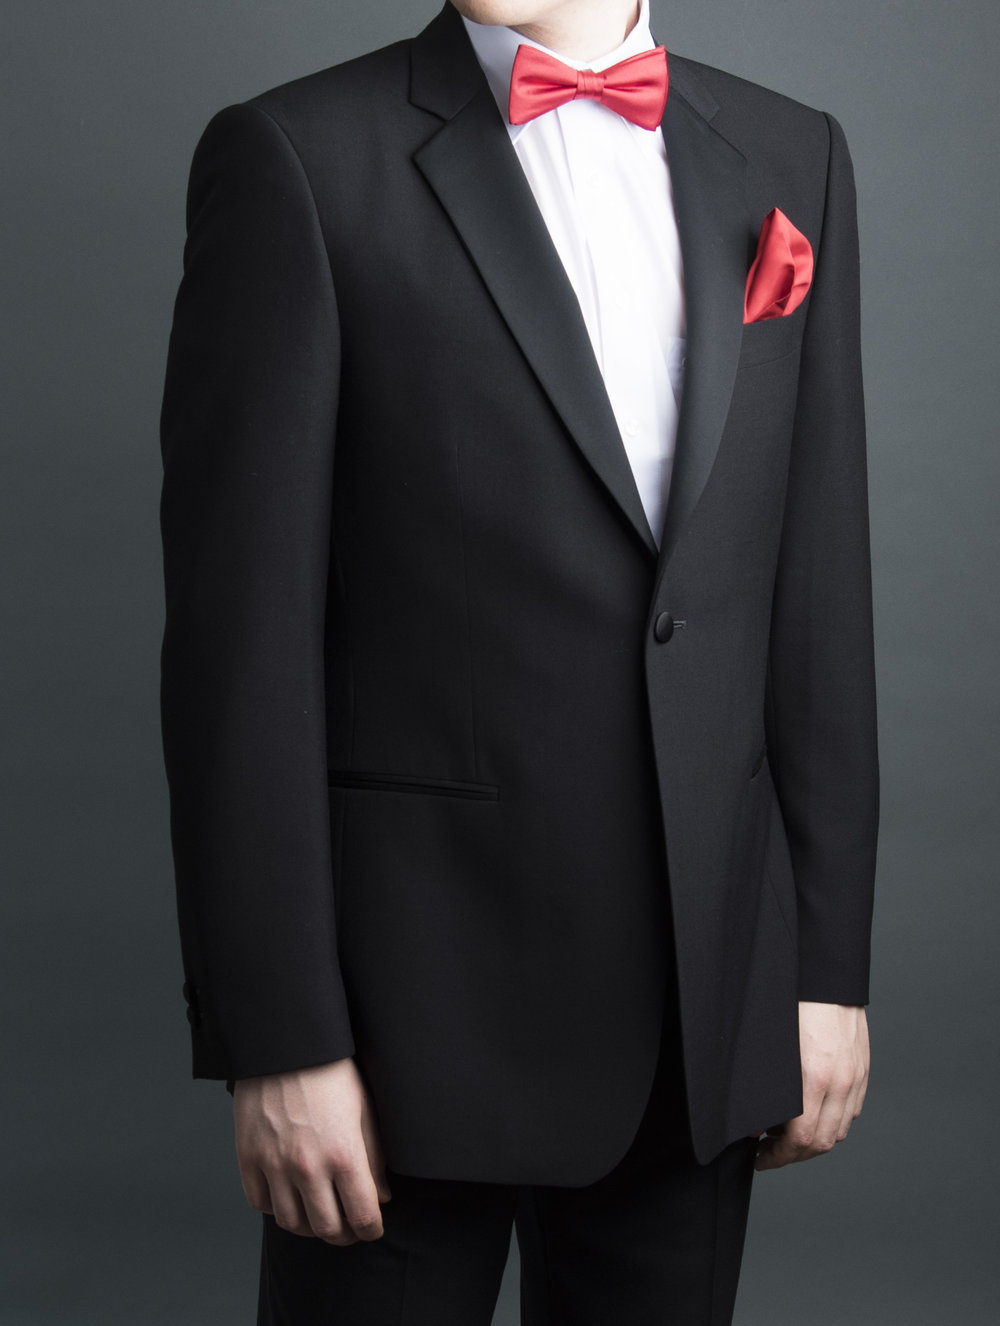 Evening wear with red bow tie and red pocket squares for web.jpg